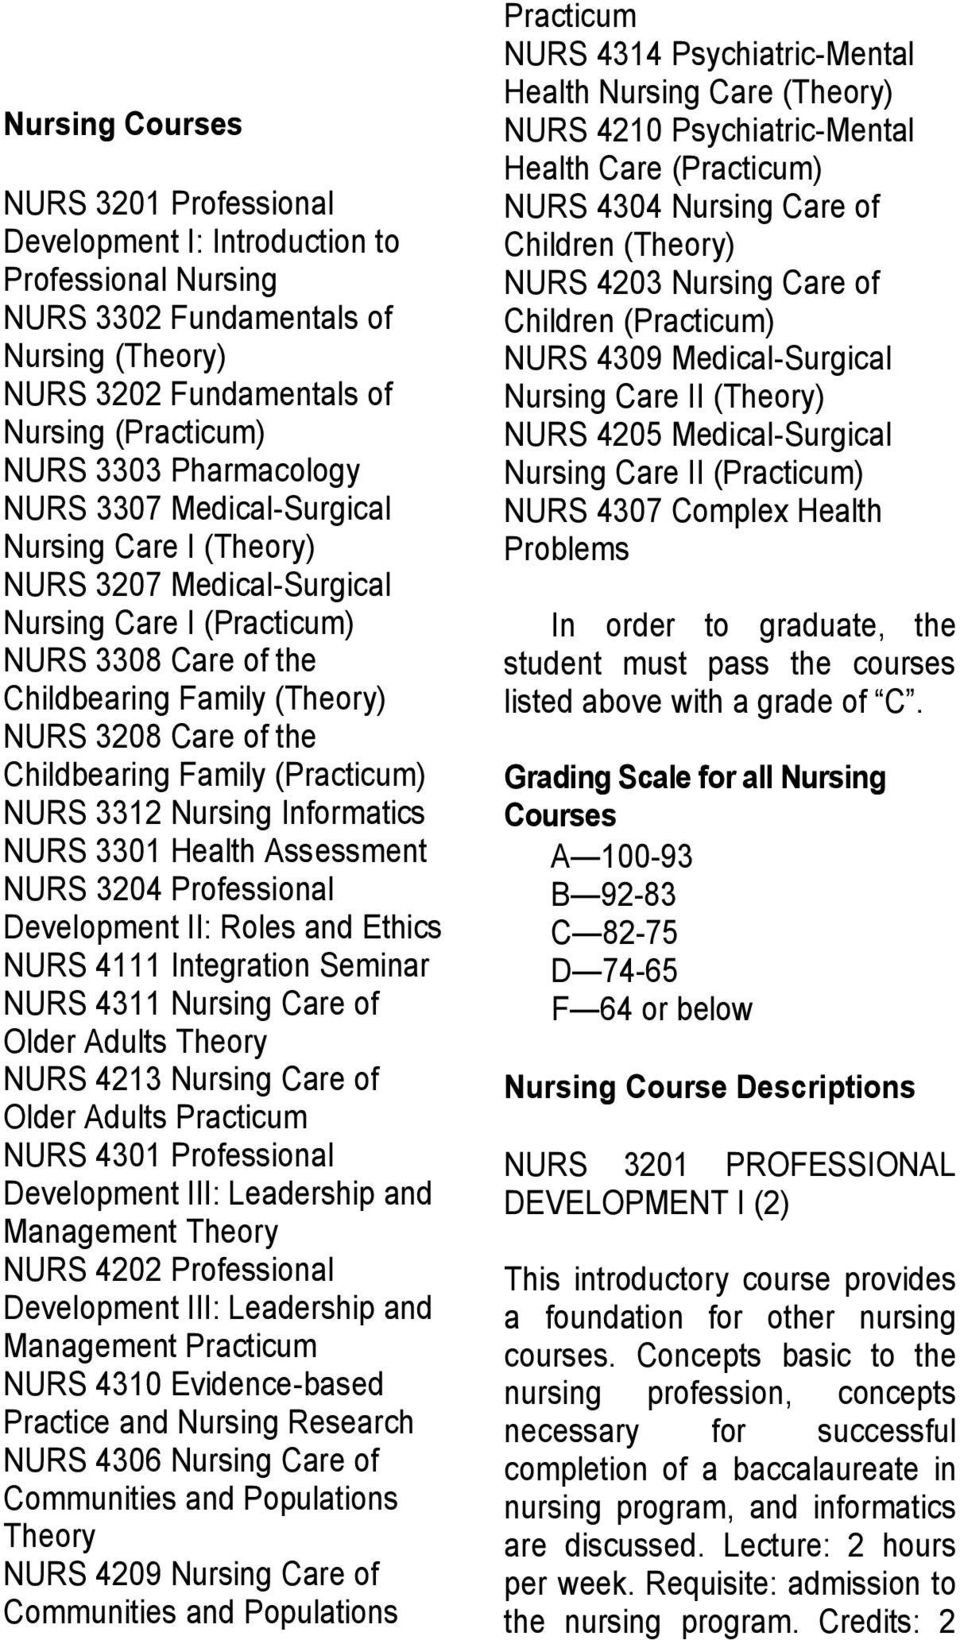 Childbearing Family (Practicum) NURS 3312 Nursing Informatics NURS 3301 Health Assessment NURS 3204 Professional Development II: Roles and Ethics NURS 4111 Integration Seminar NURS 4311 Nursing Care